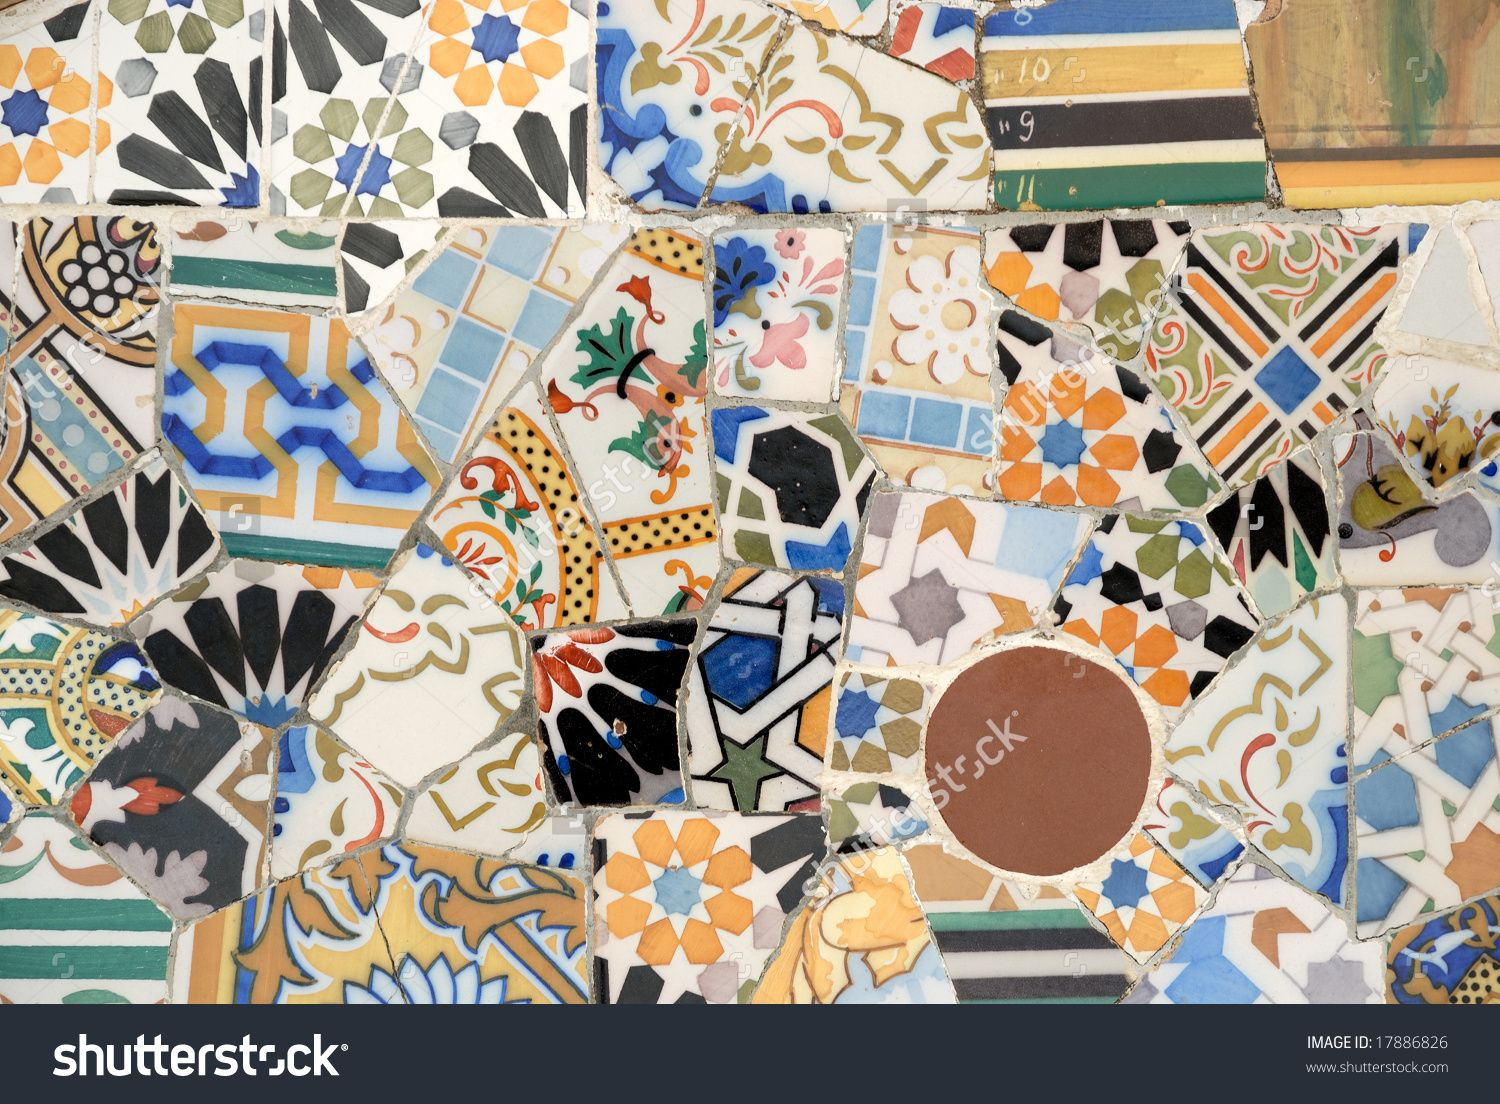 stock-photo-mosaic-art-by-antoni-gaudi-barcelona-spain-17886826.jpg (1500×1104)